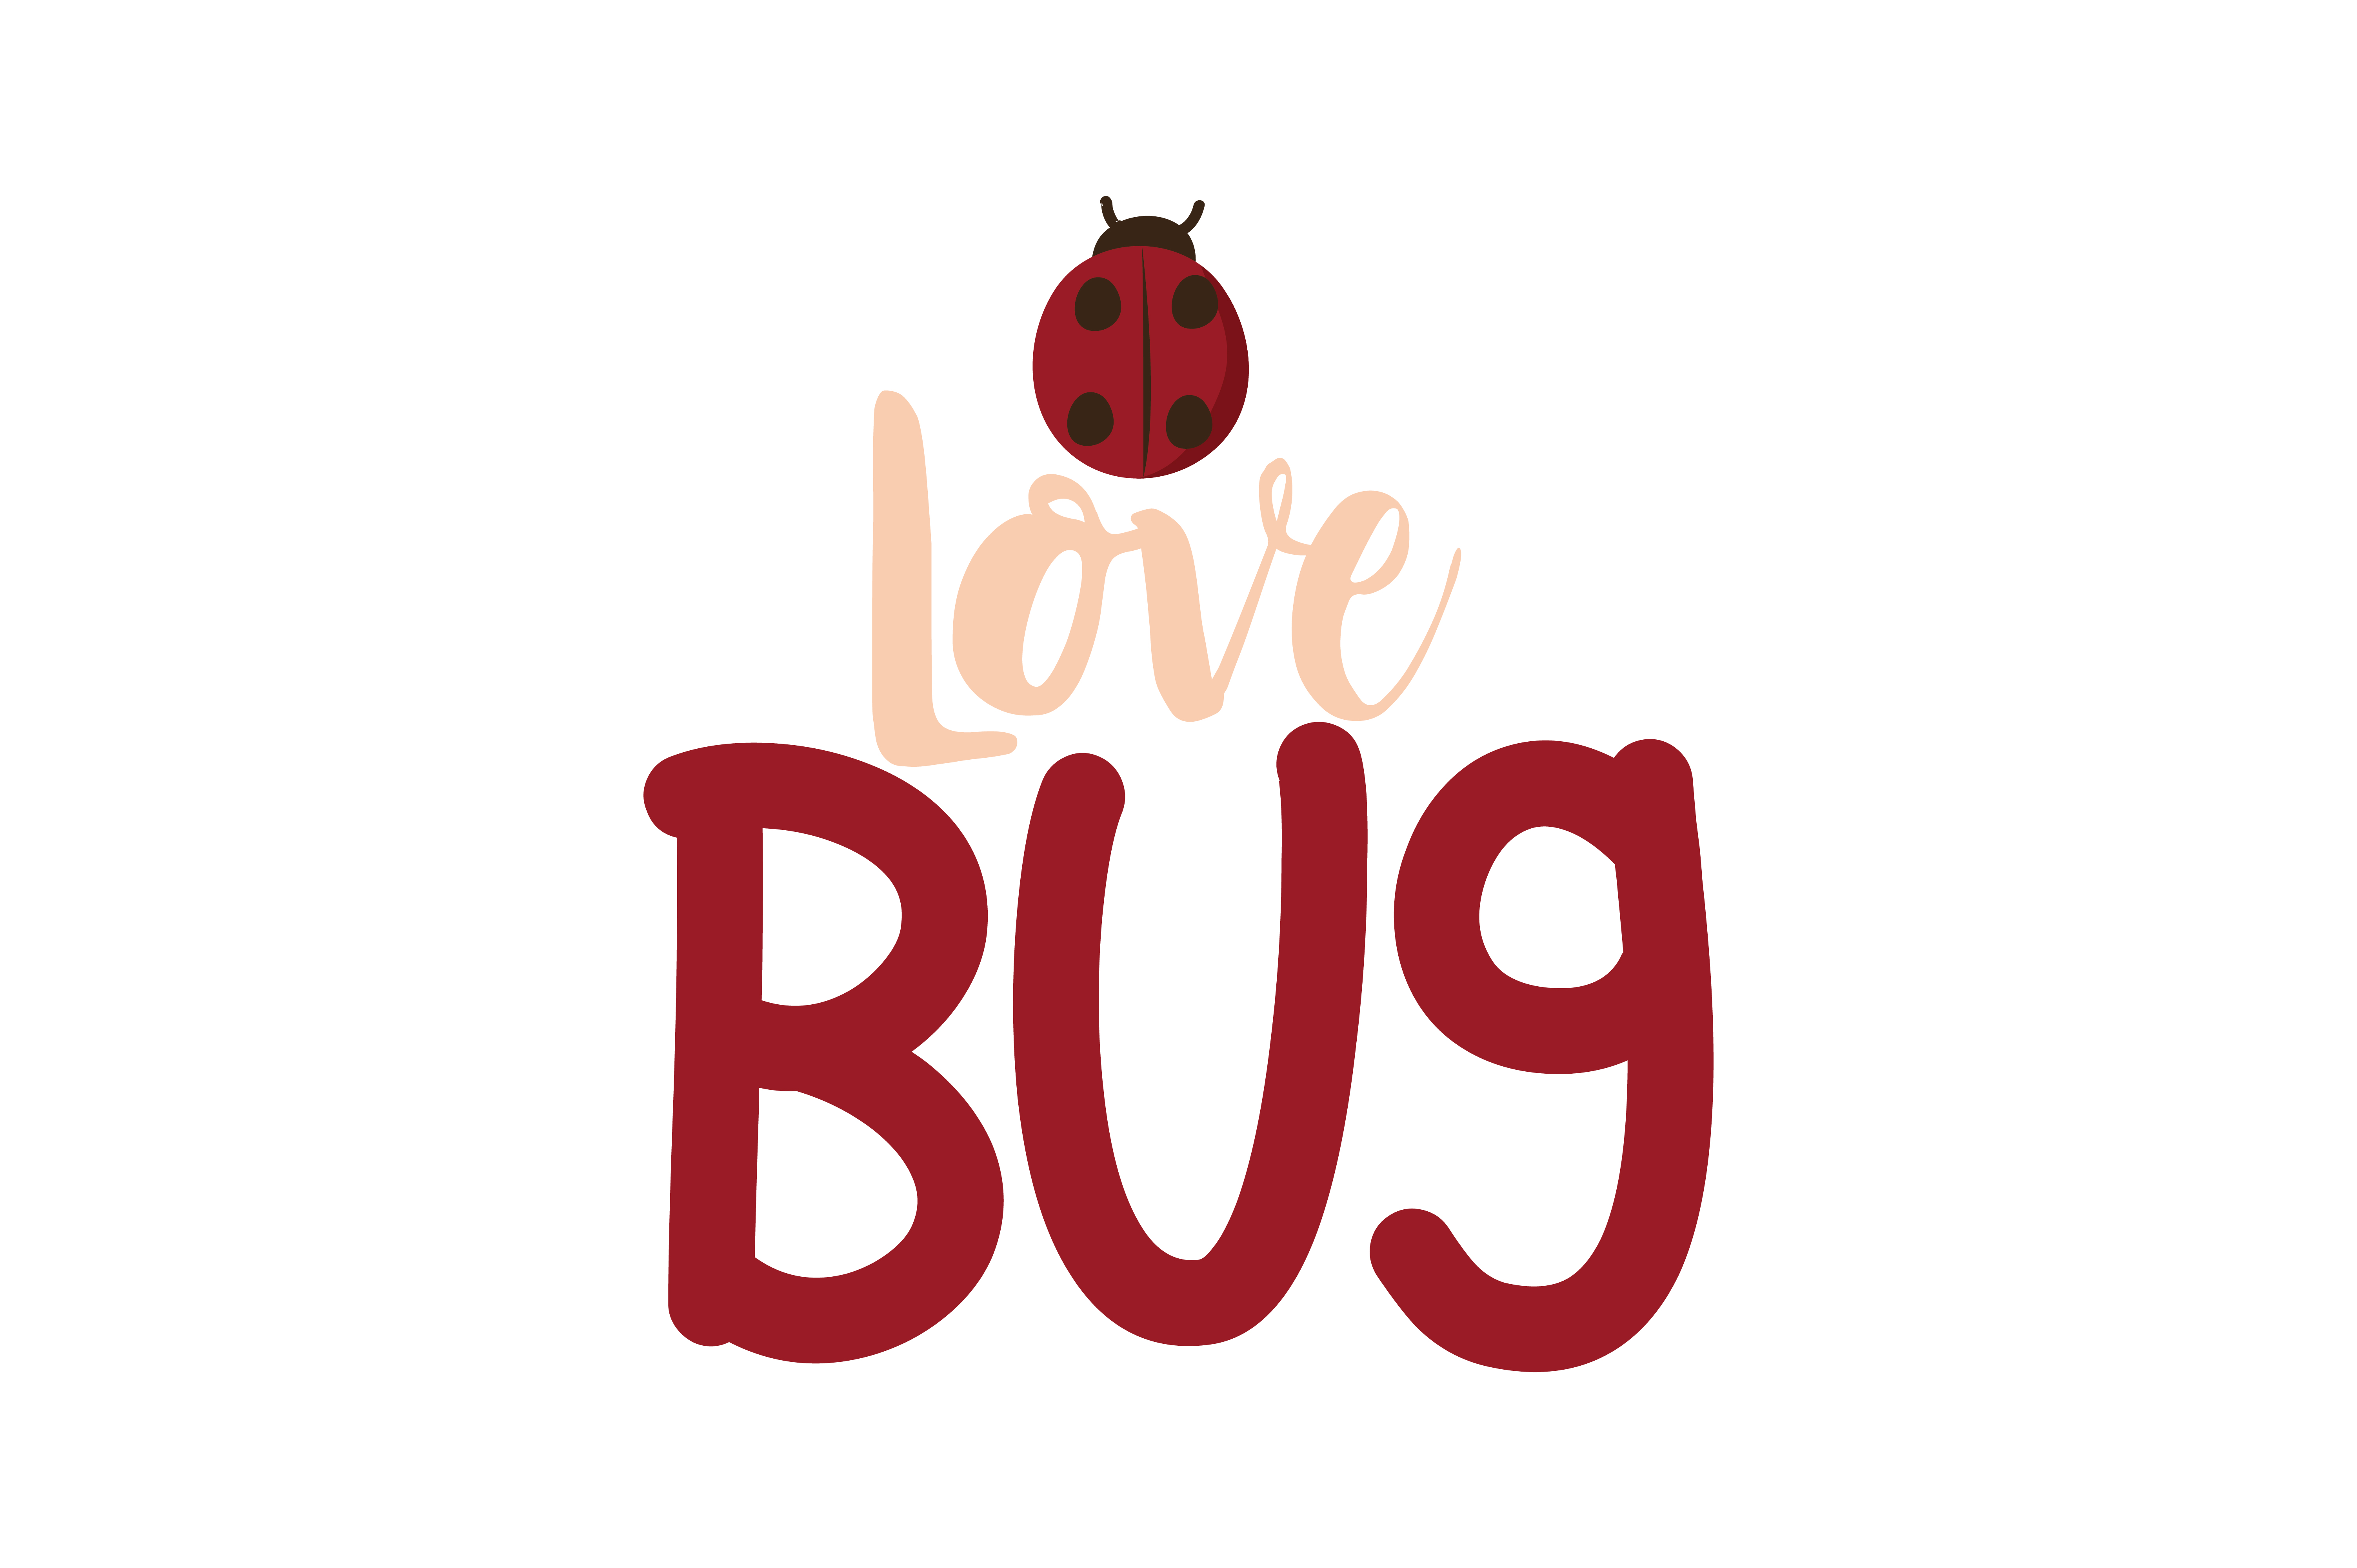 Download Free Love Bug Quote Svg Cut Graphic By Thelucky Creative Fabrica for Cricut Explore, Silhouette and other cutting machines.